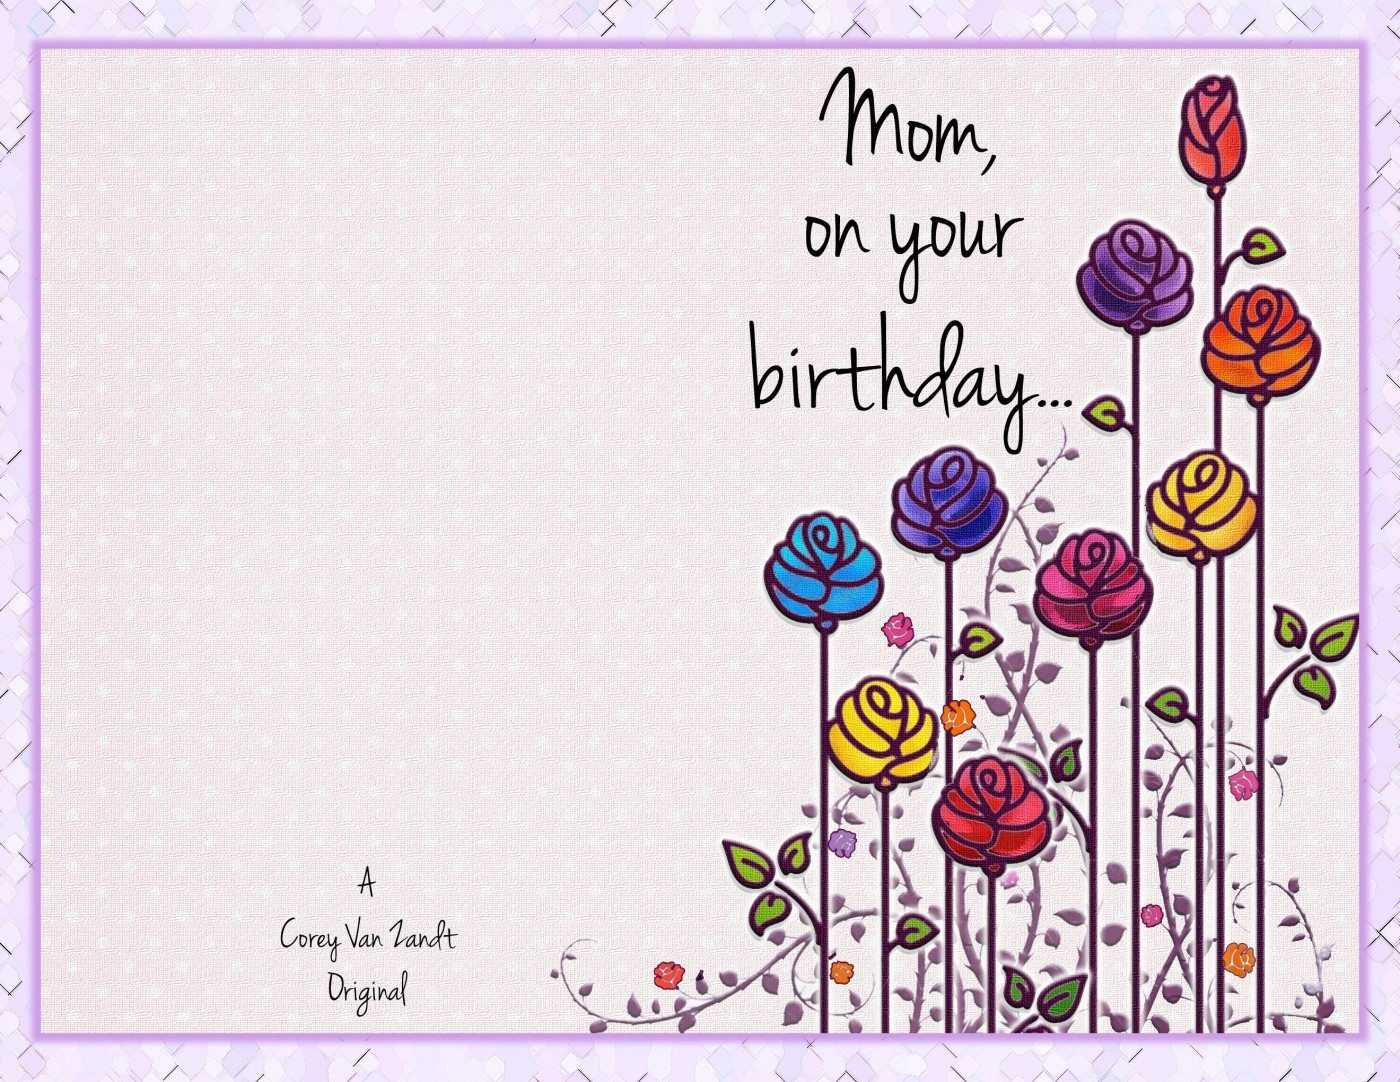 Mom Birthday Card Template | Theveliger Intended For Mom Birthday Card Template